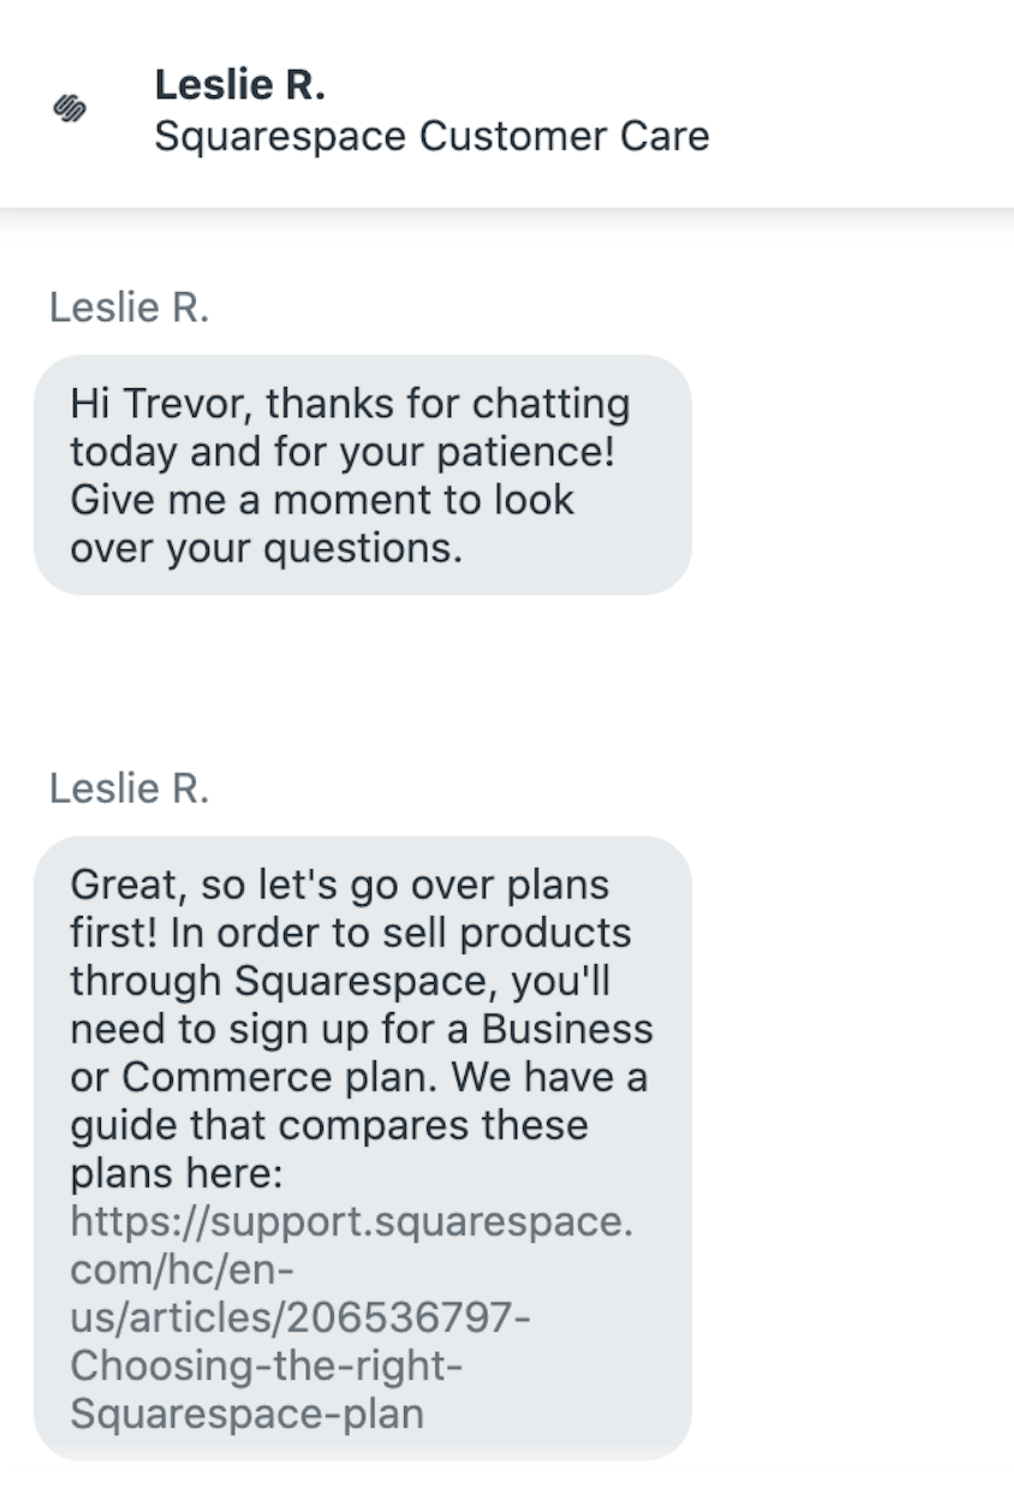 Squarespace - 24/7 Customer support via chat